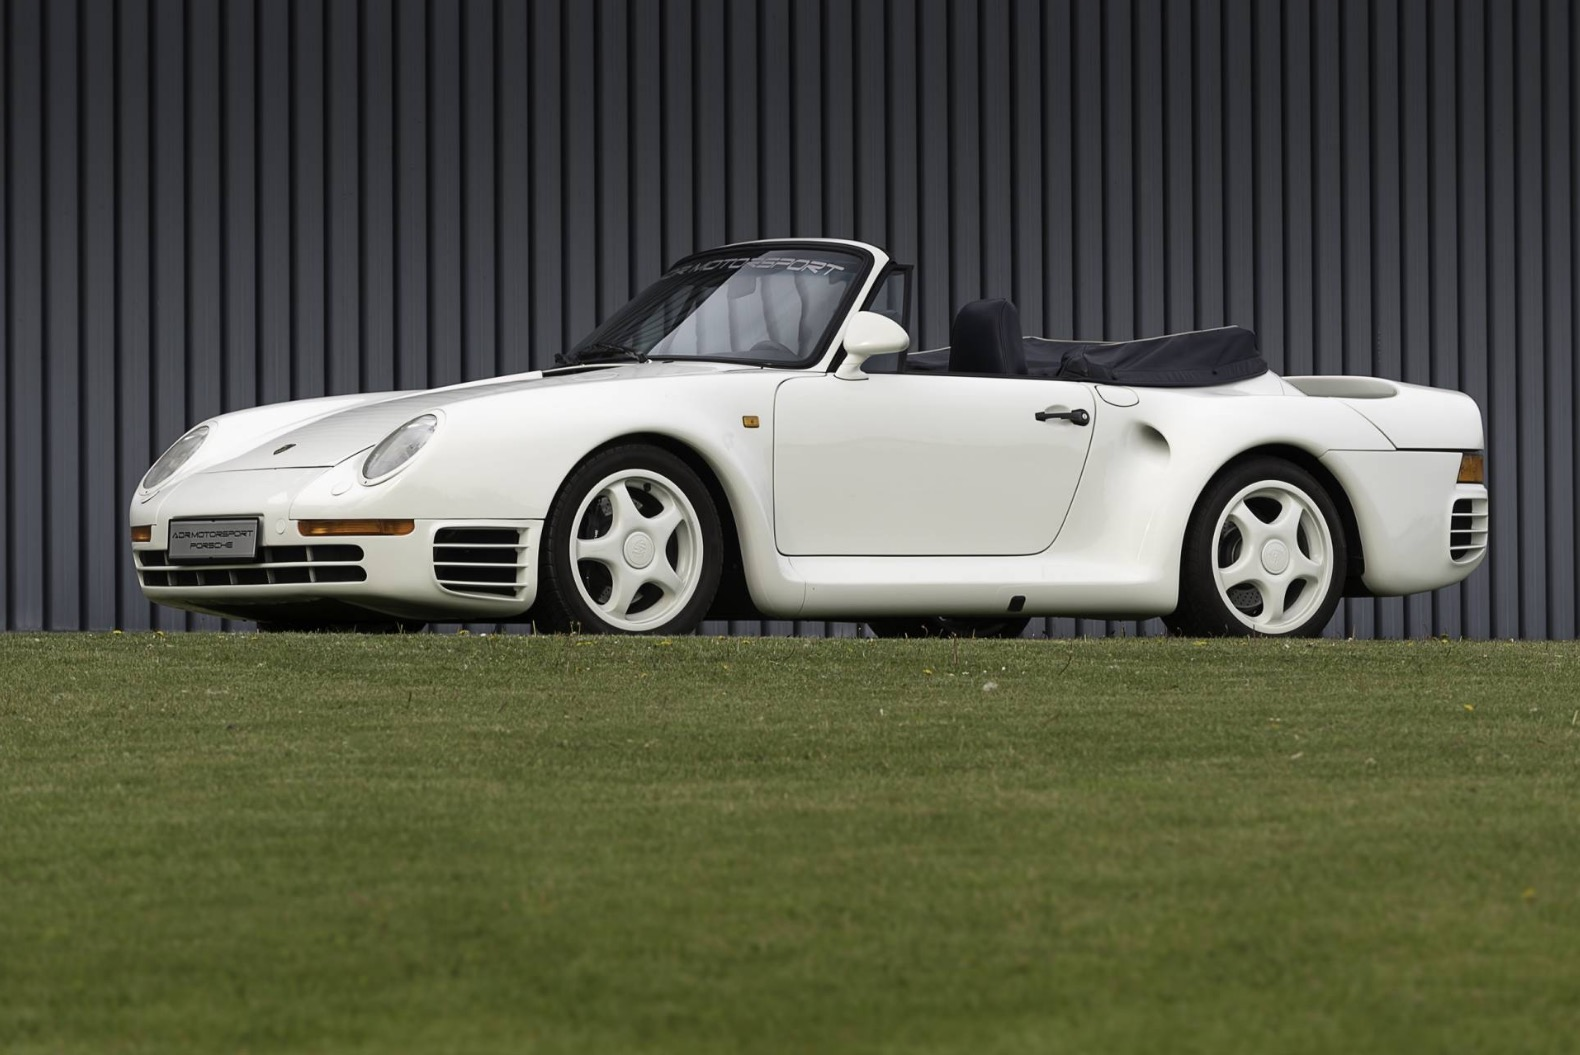 Unique Porsche 959 Cabriolet Is Looking For a New Owner